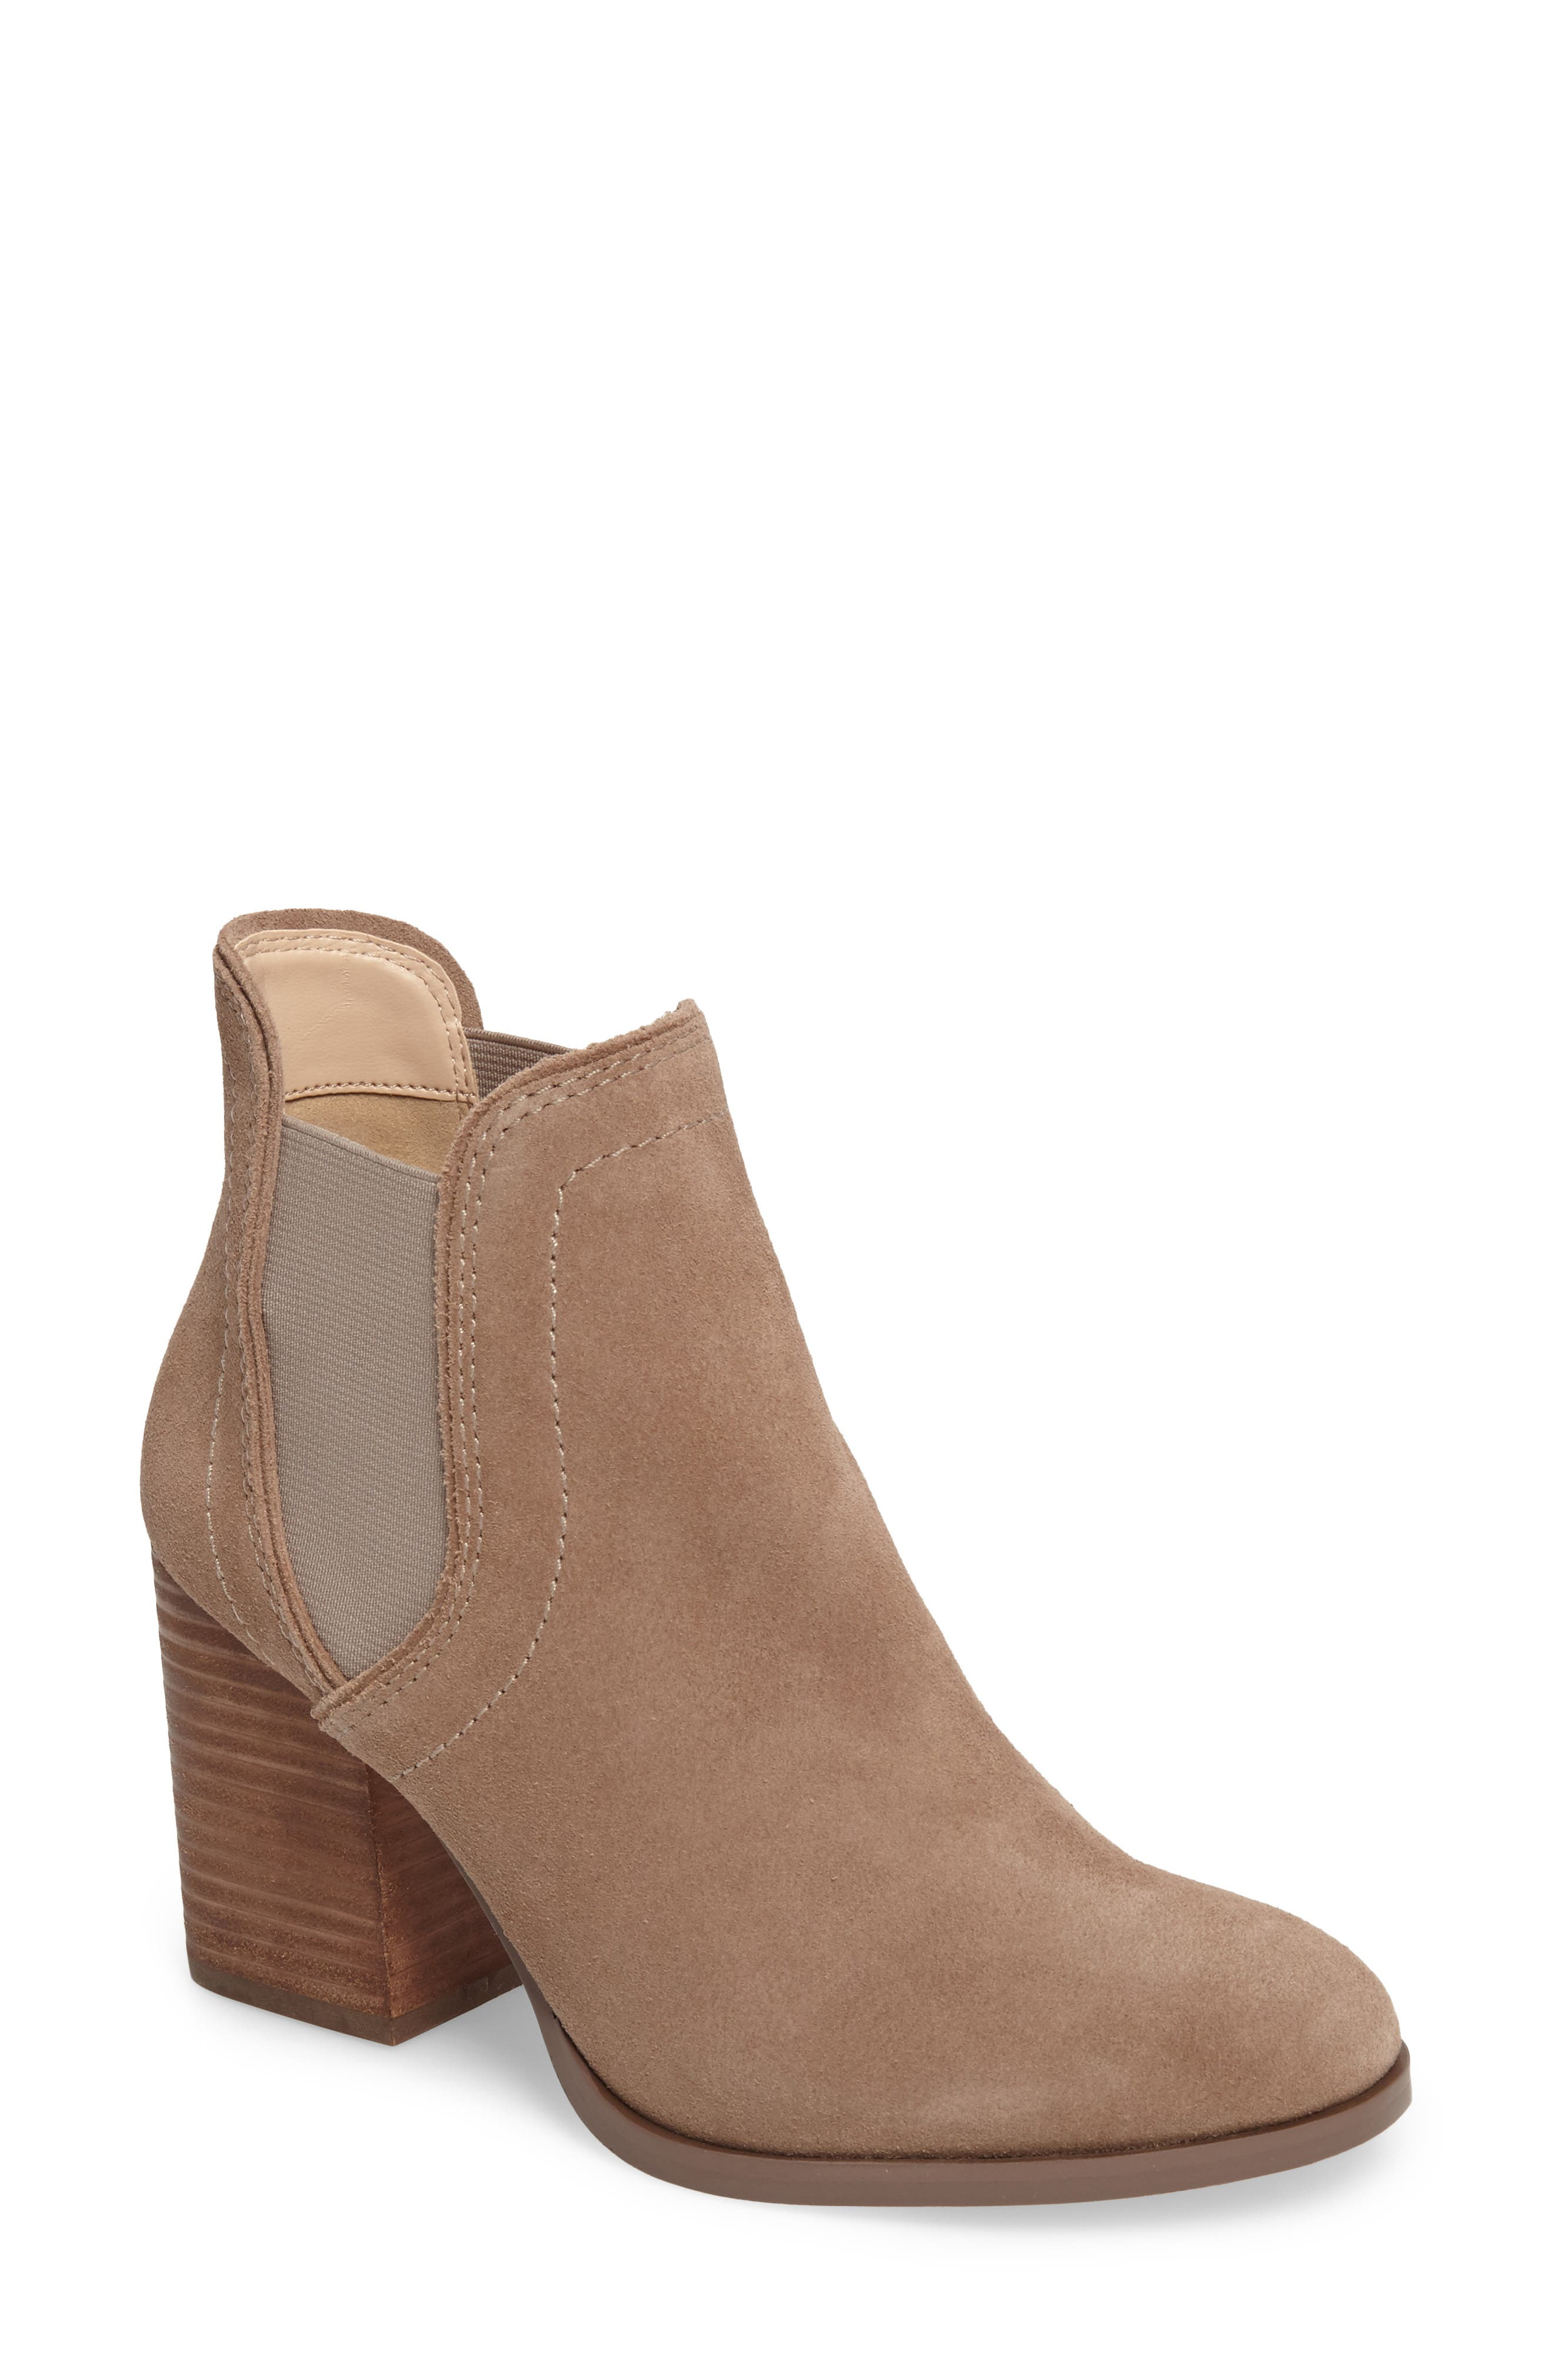 Carrillo Bootie,                             Main thumbnail 1, color,                             Taupe